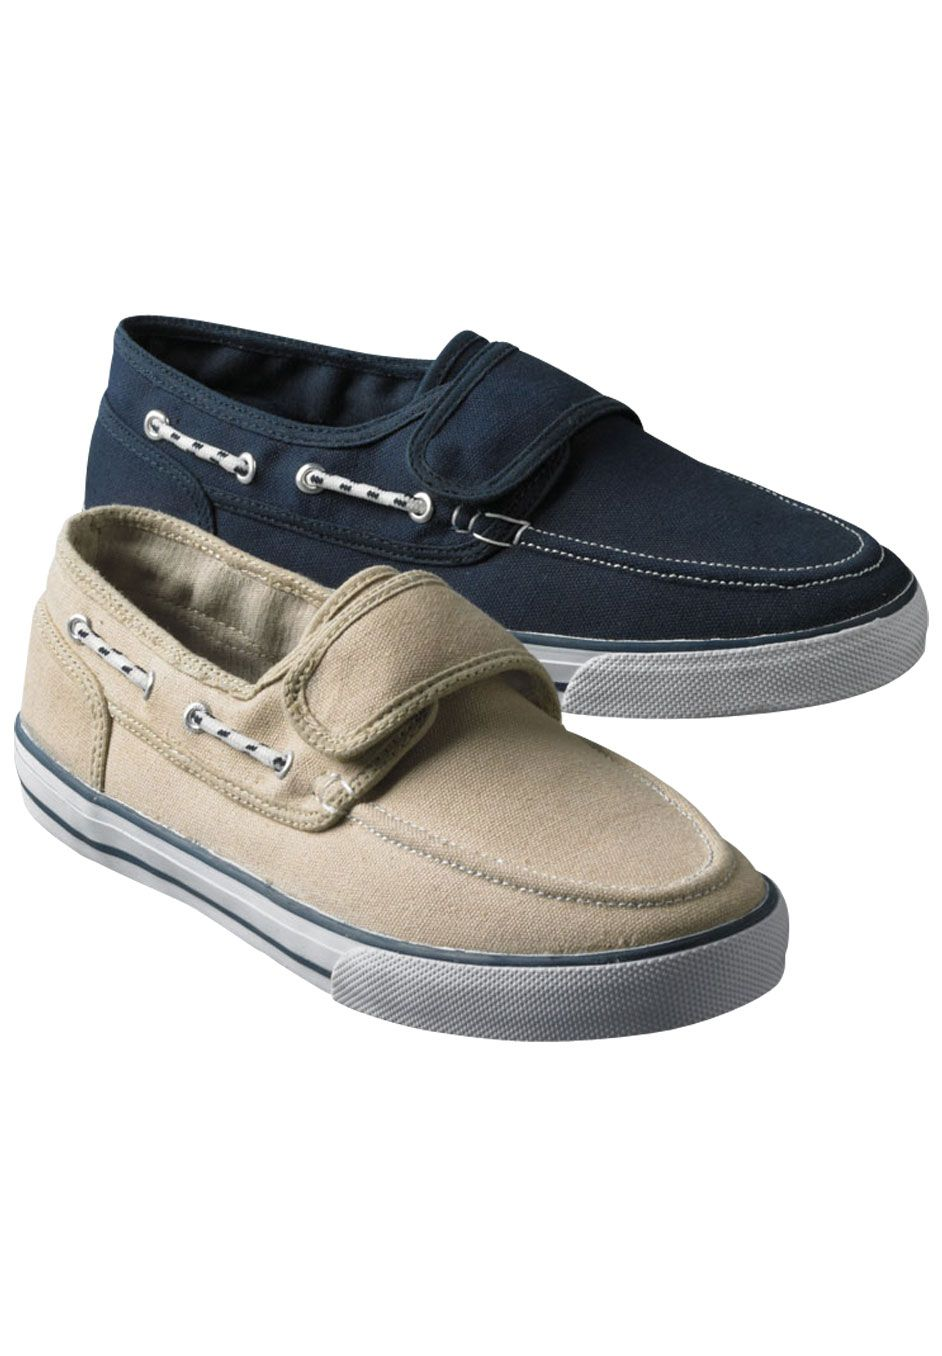 Looking for summer shoes that are wide width, comfy, and easy to put on.  Big and Tall Velcro Deck Shoes